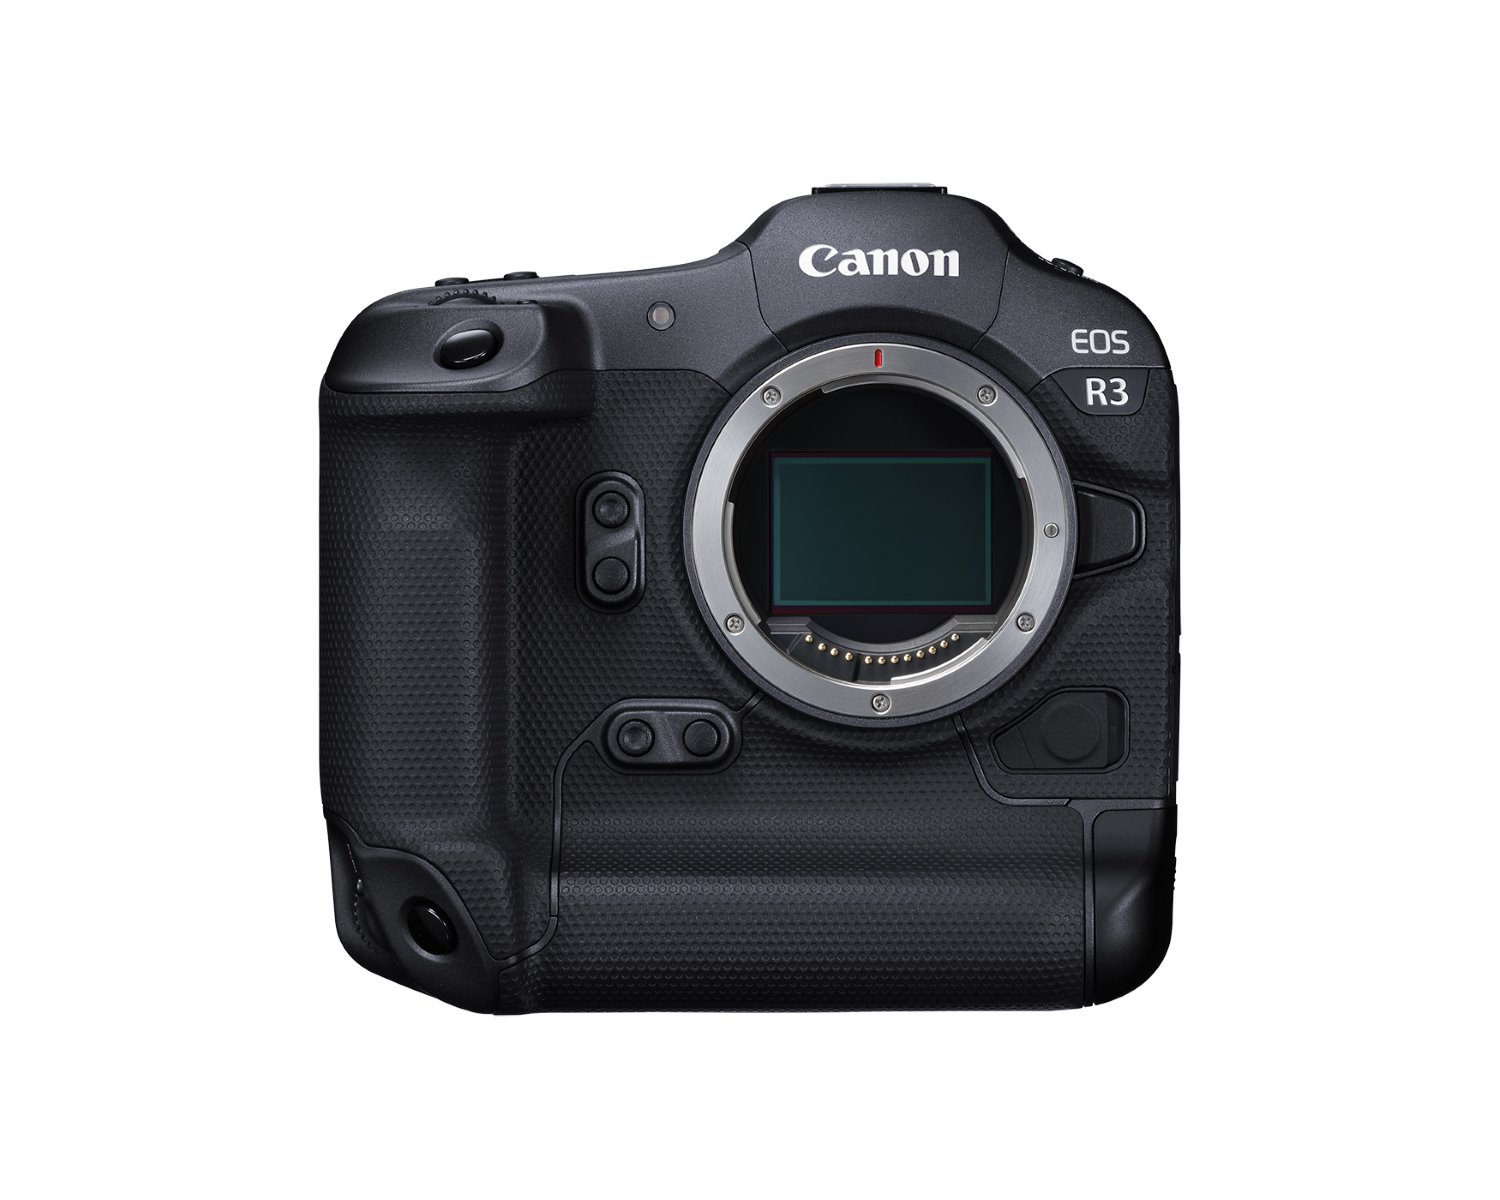 Canon Announces the EOS R3: Dual Card Slots, 30 FPS, and 6K Video